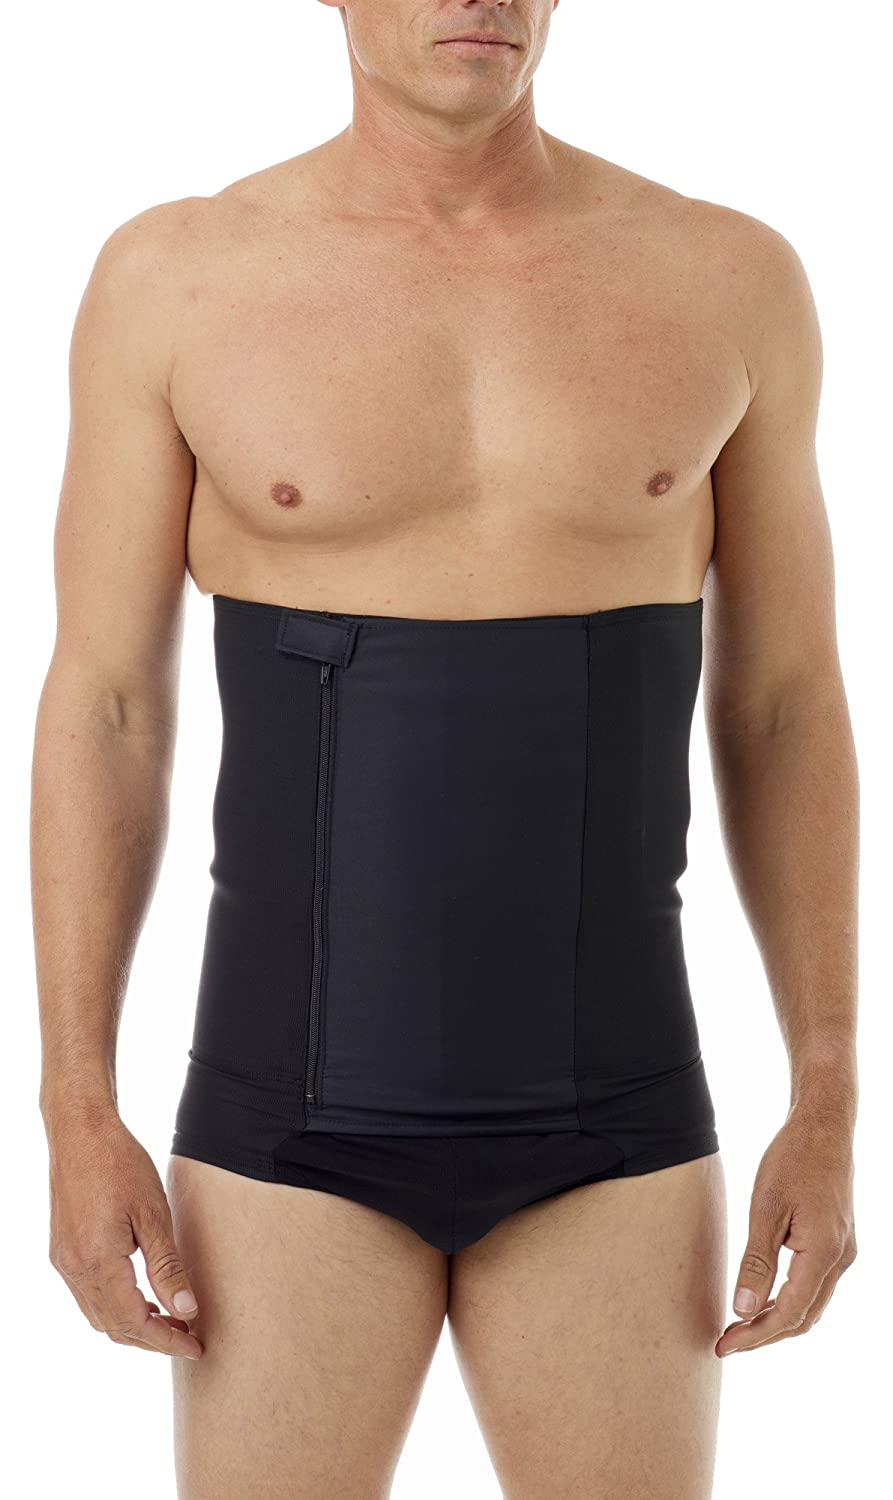 2d11e1e3e90d2 Underworks Belly Buster! 12-inch Zip-N-Trim Brief Girdle for Men - for  Tummy Trimming